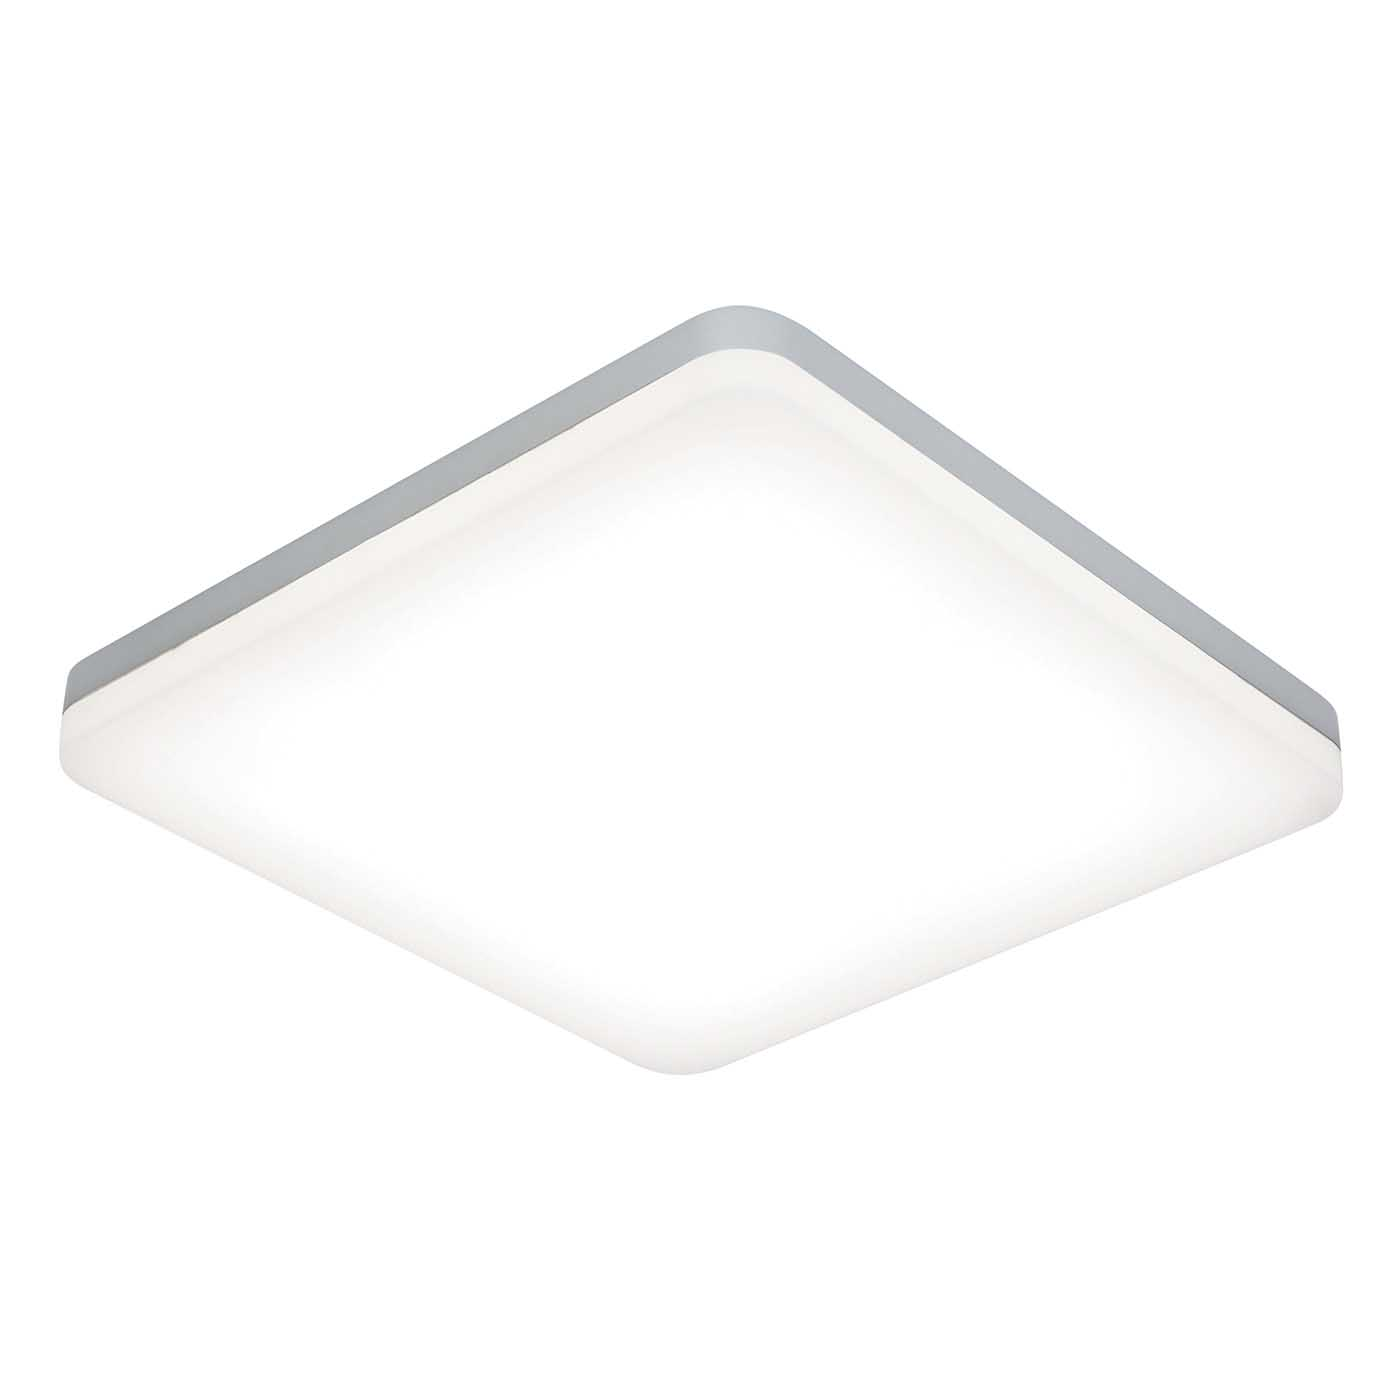 Saxby Noble Square Flush Ip44 Led Bathroom Ceiling Light 22w Opal Silver 4000k Ebay